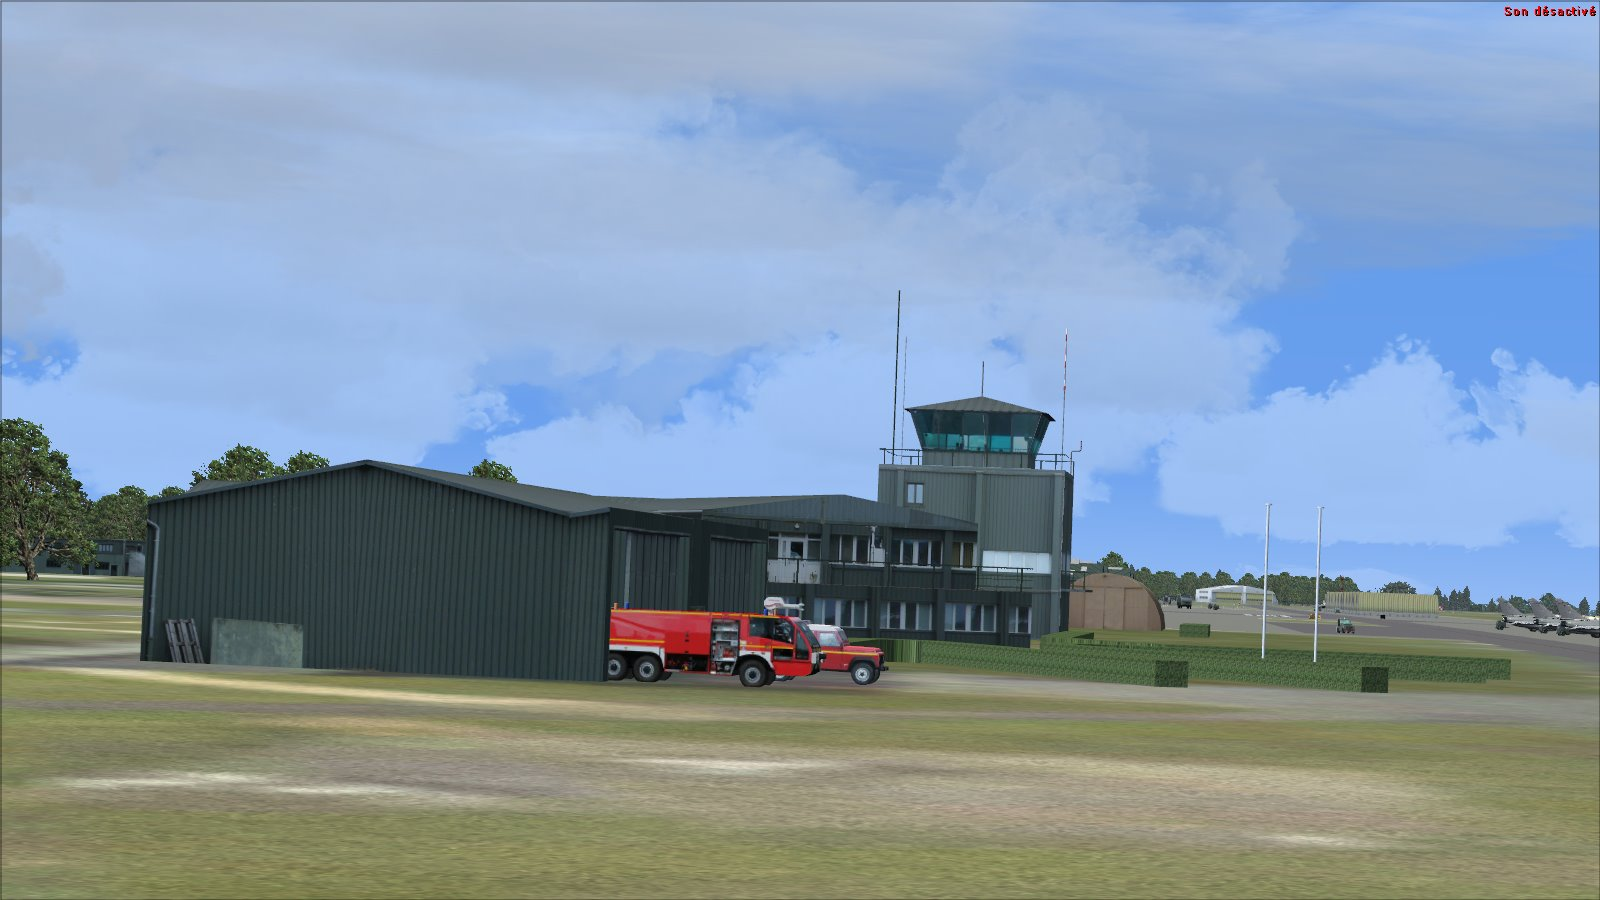 SKYDESIGNERS - FRENCH AIRBASE 113 SAINT DIZIER